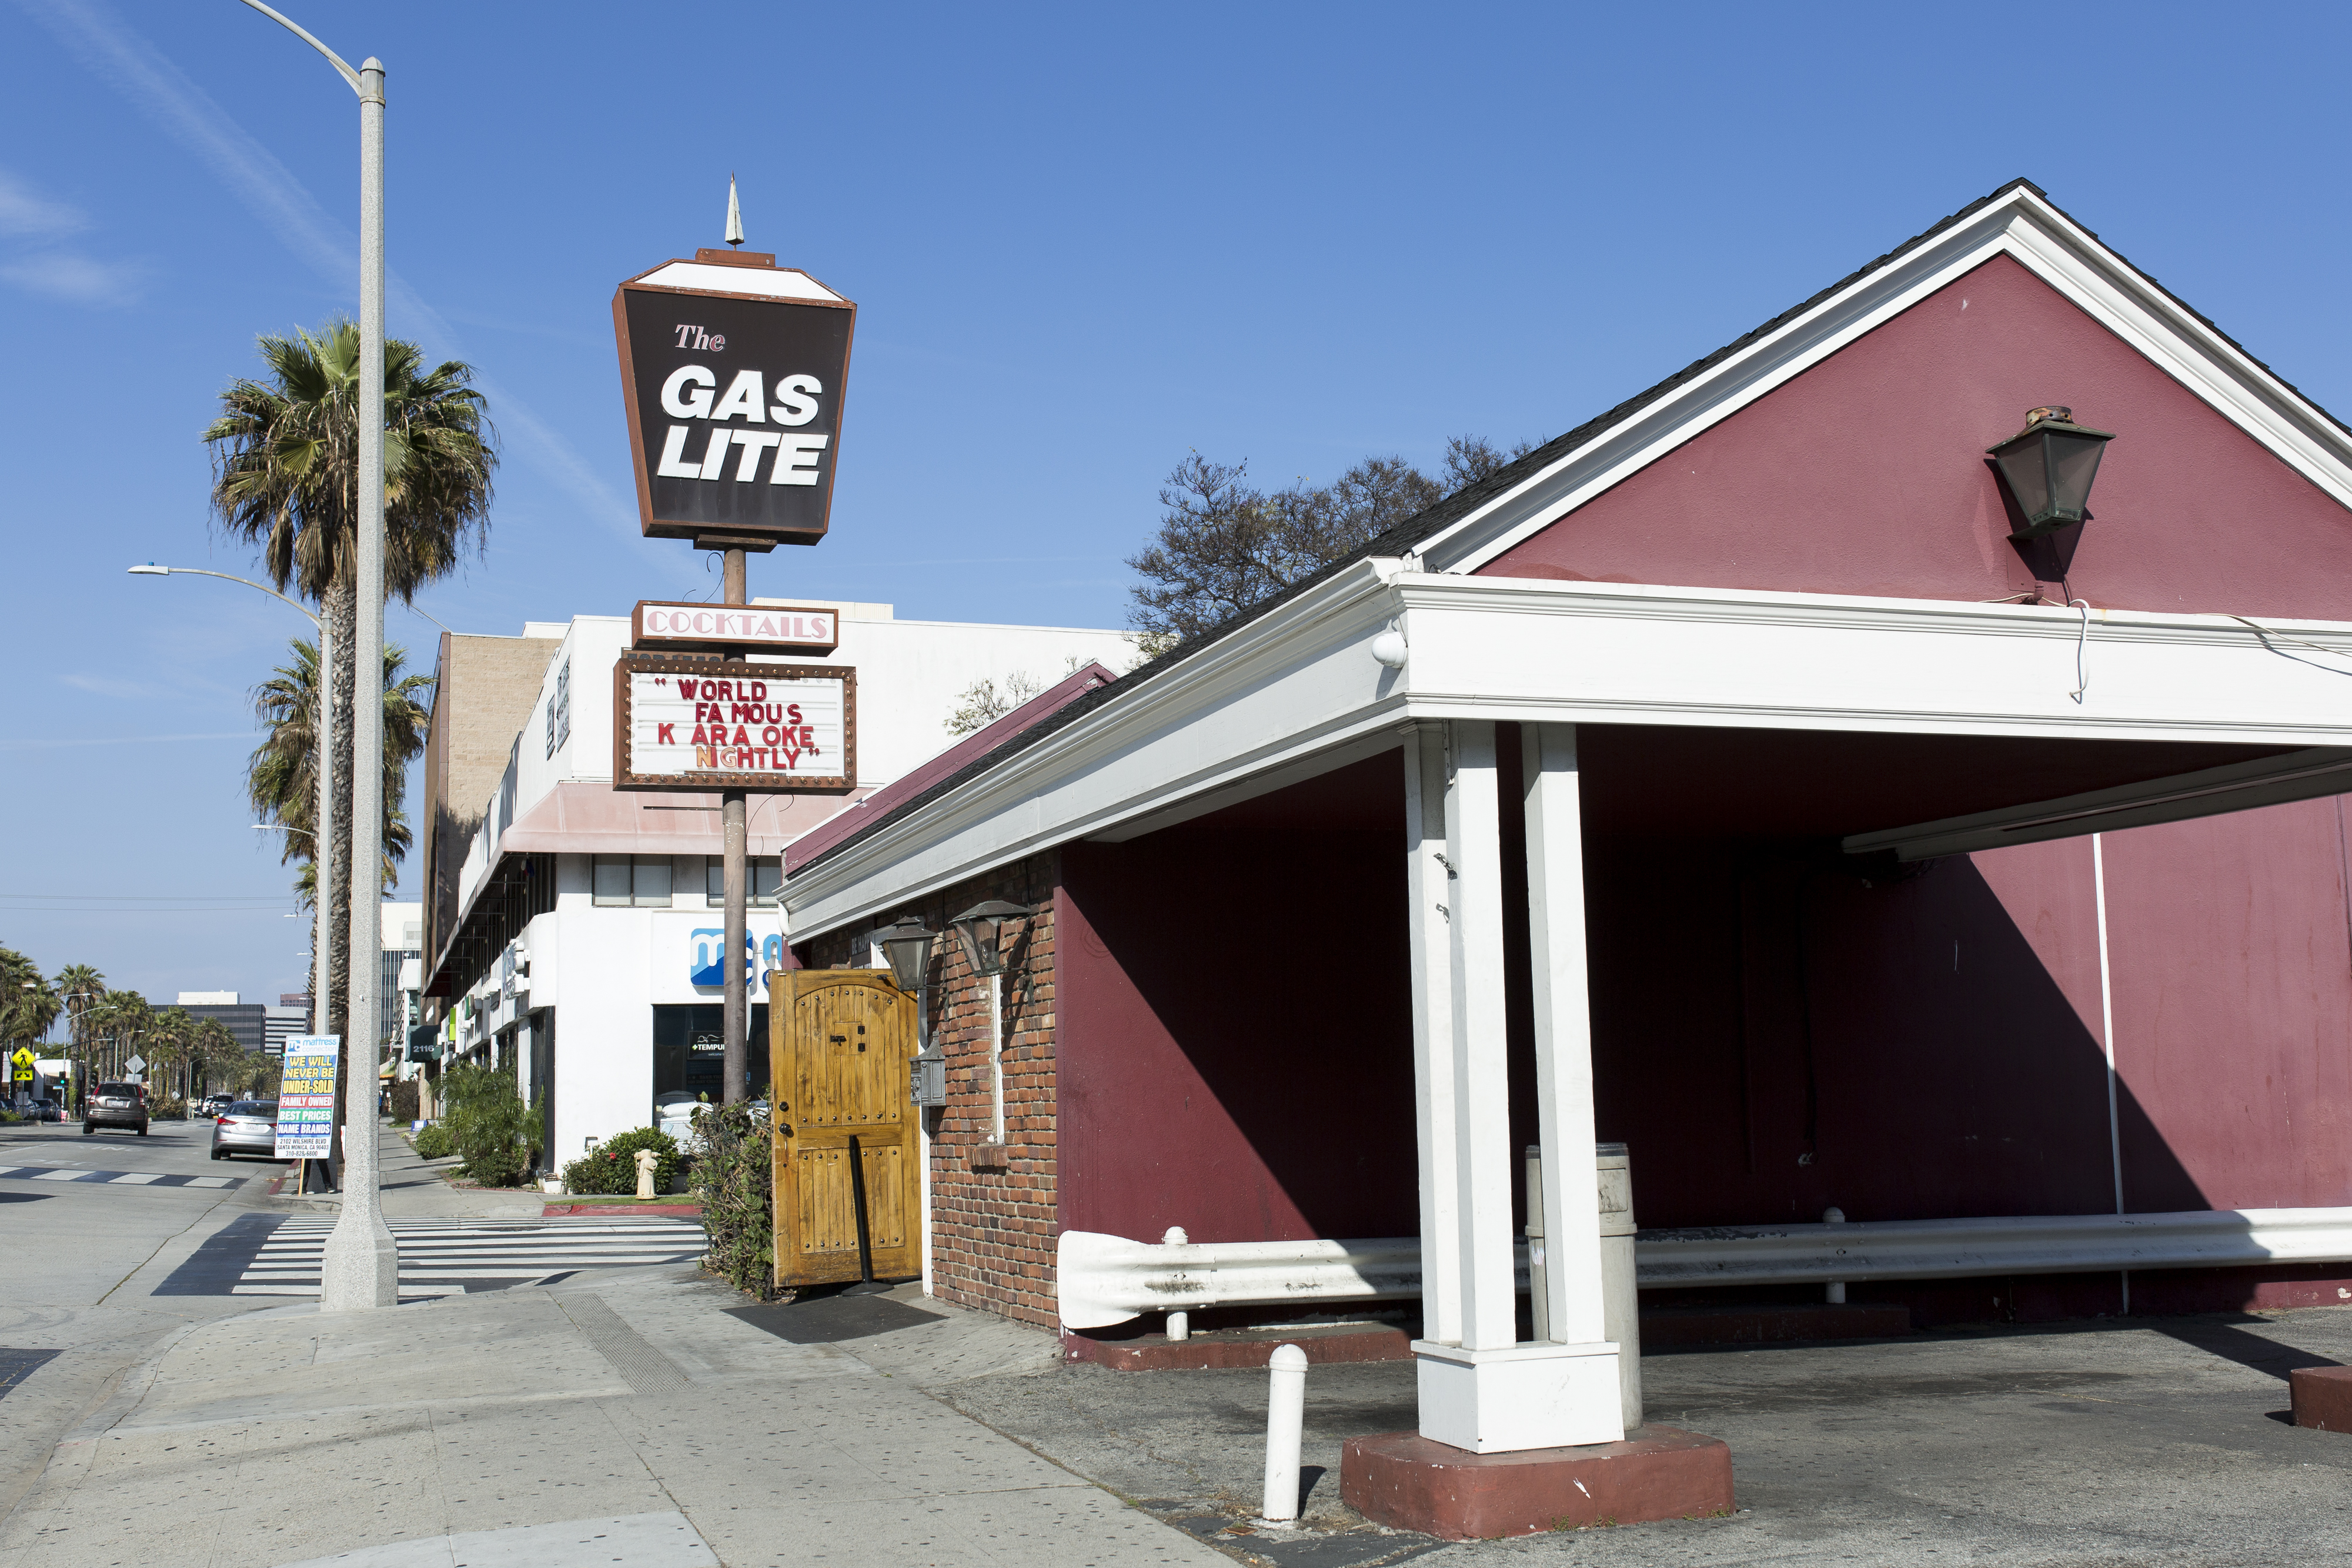 16 LA Bars Where You Can Dance - Los Angeles - The Infatuation